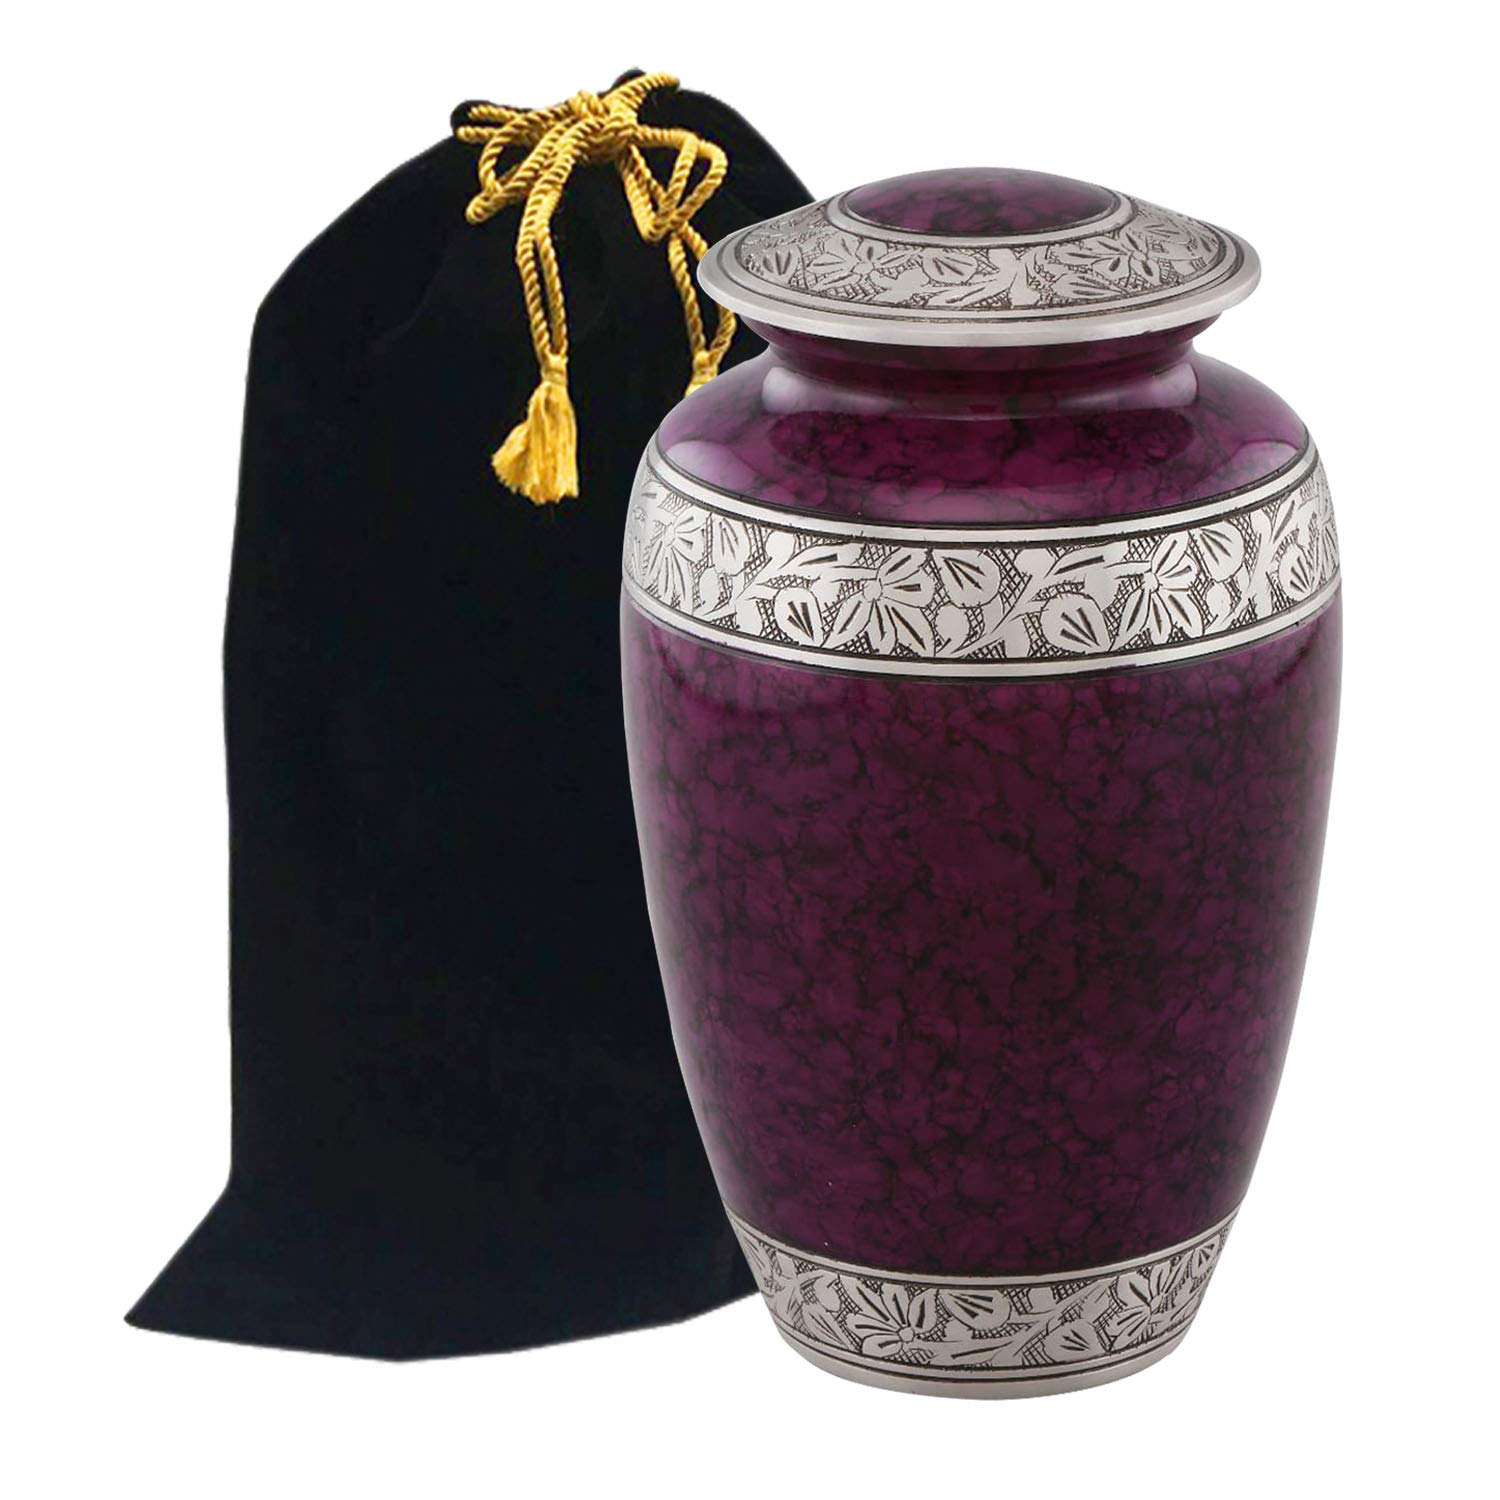 Eternitymart Classic Shimmering Fire Cremation Urn - Affordable Metal Urn - Handcrafted Solid Metal Urn for Ashes, Adult Cremation Urn with Free Velvet Bag (Wine) by Eternitymart